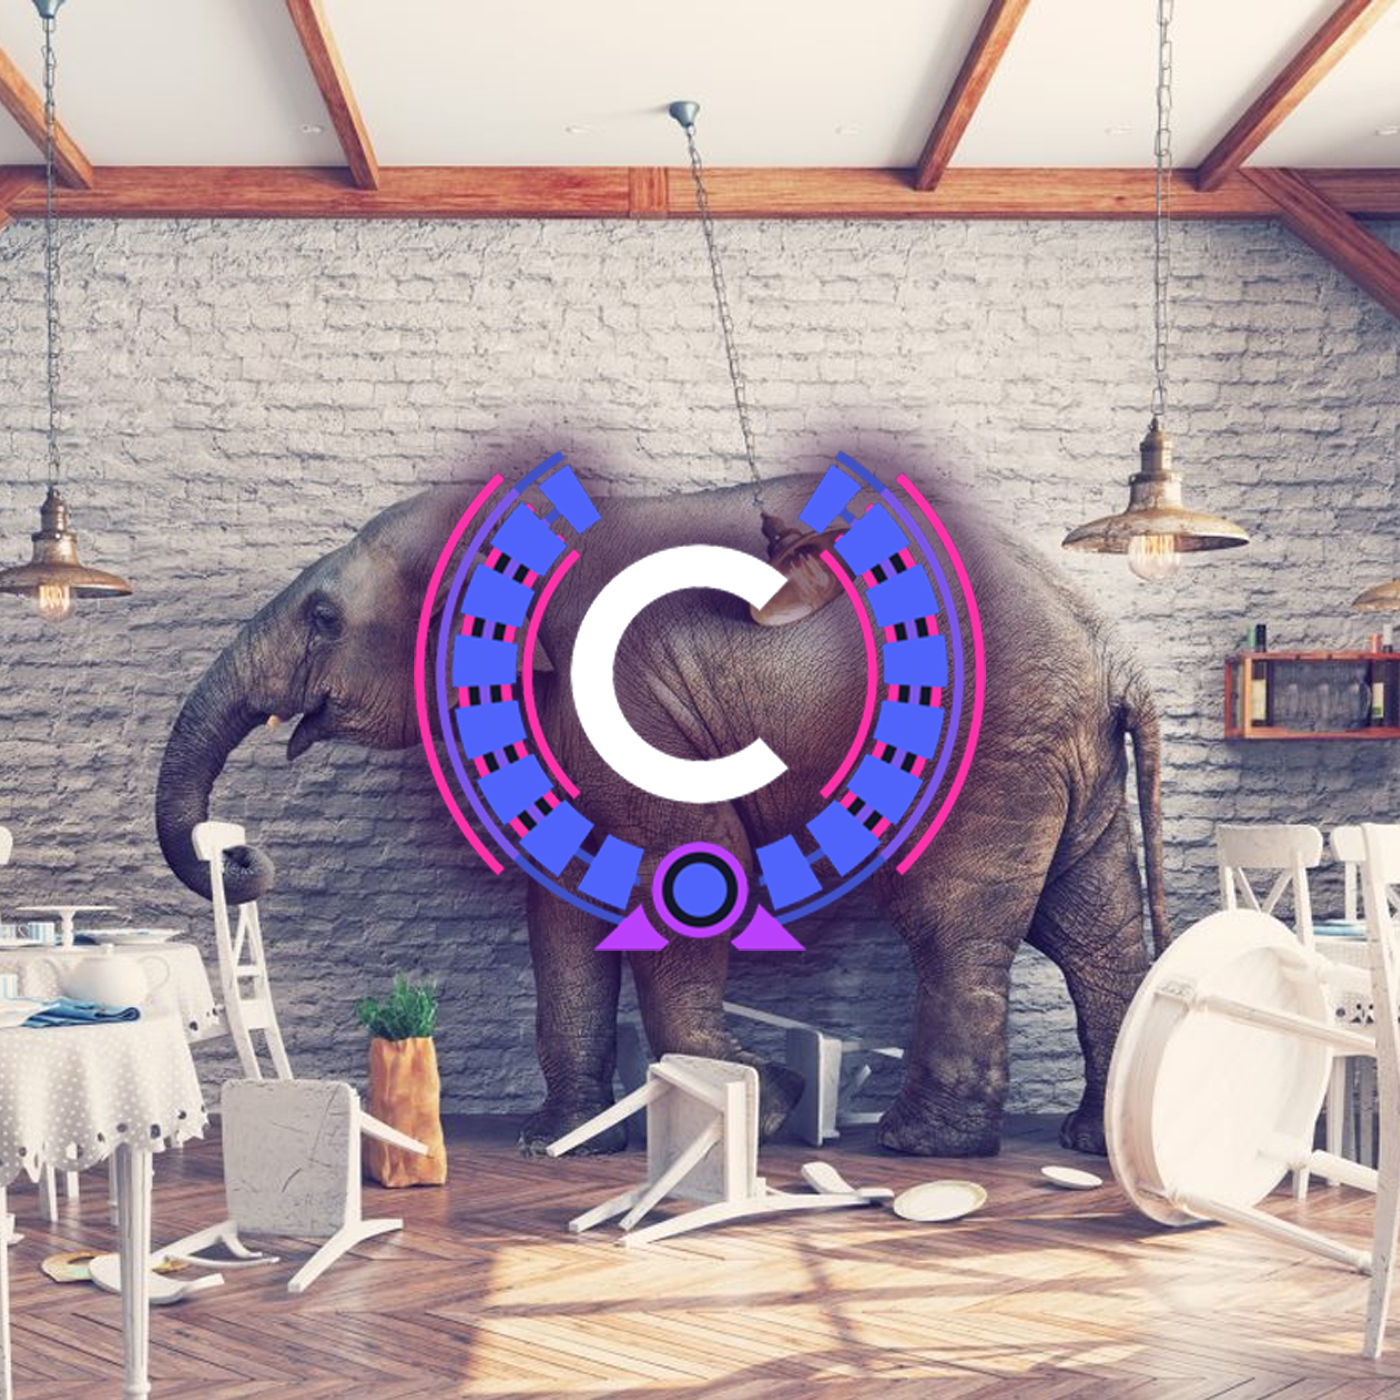 Episode 2 - The Elephant in the Room